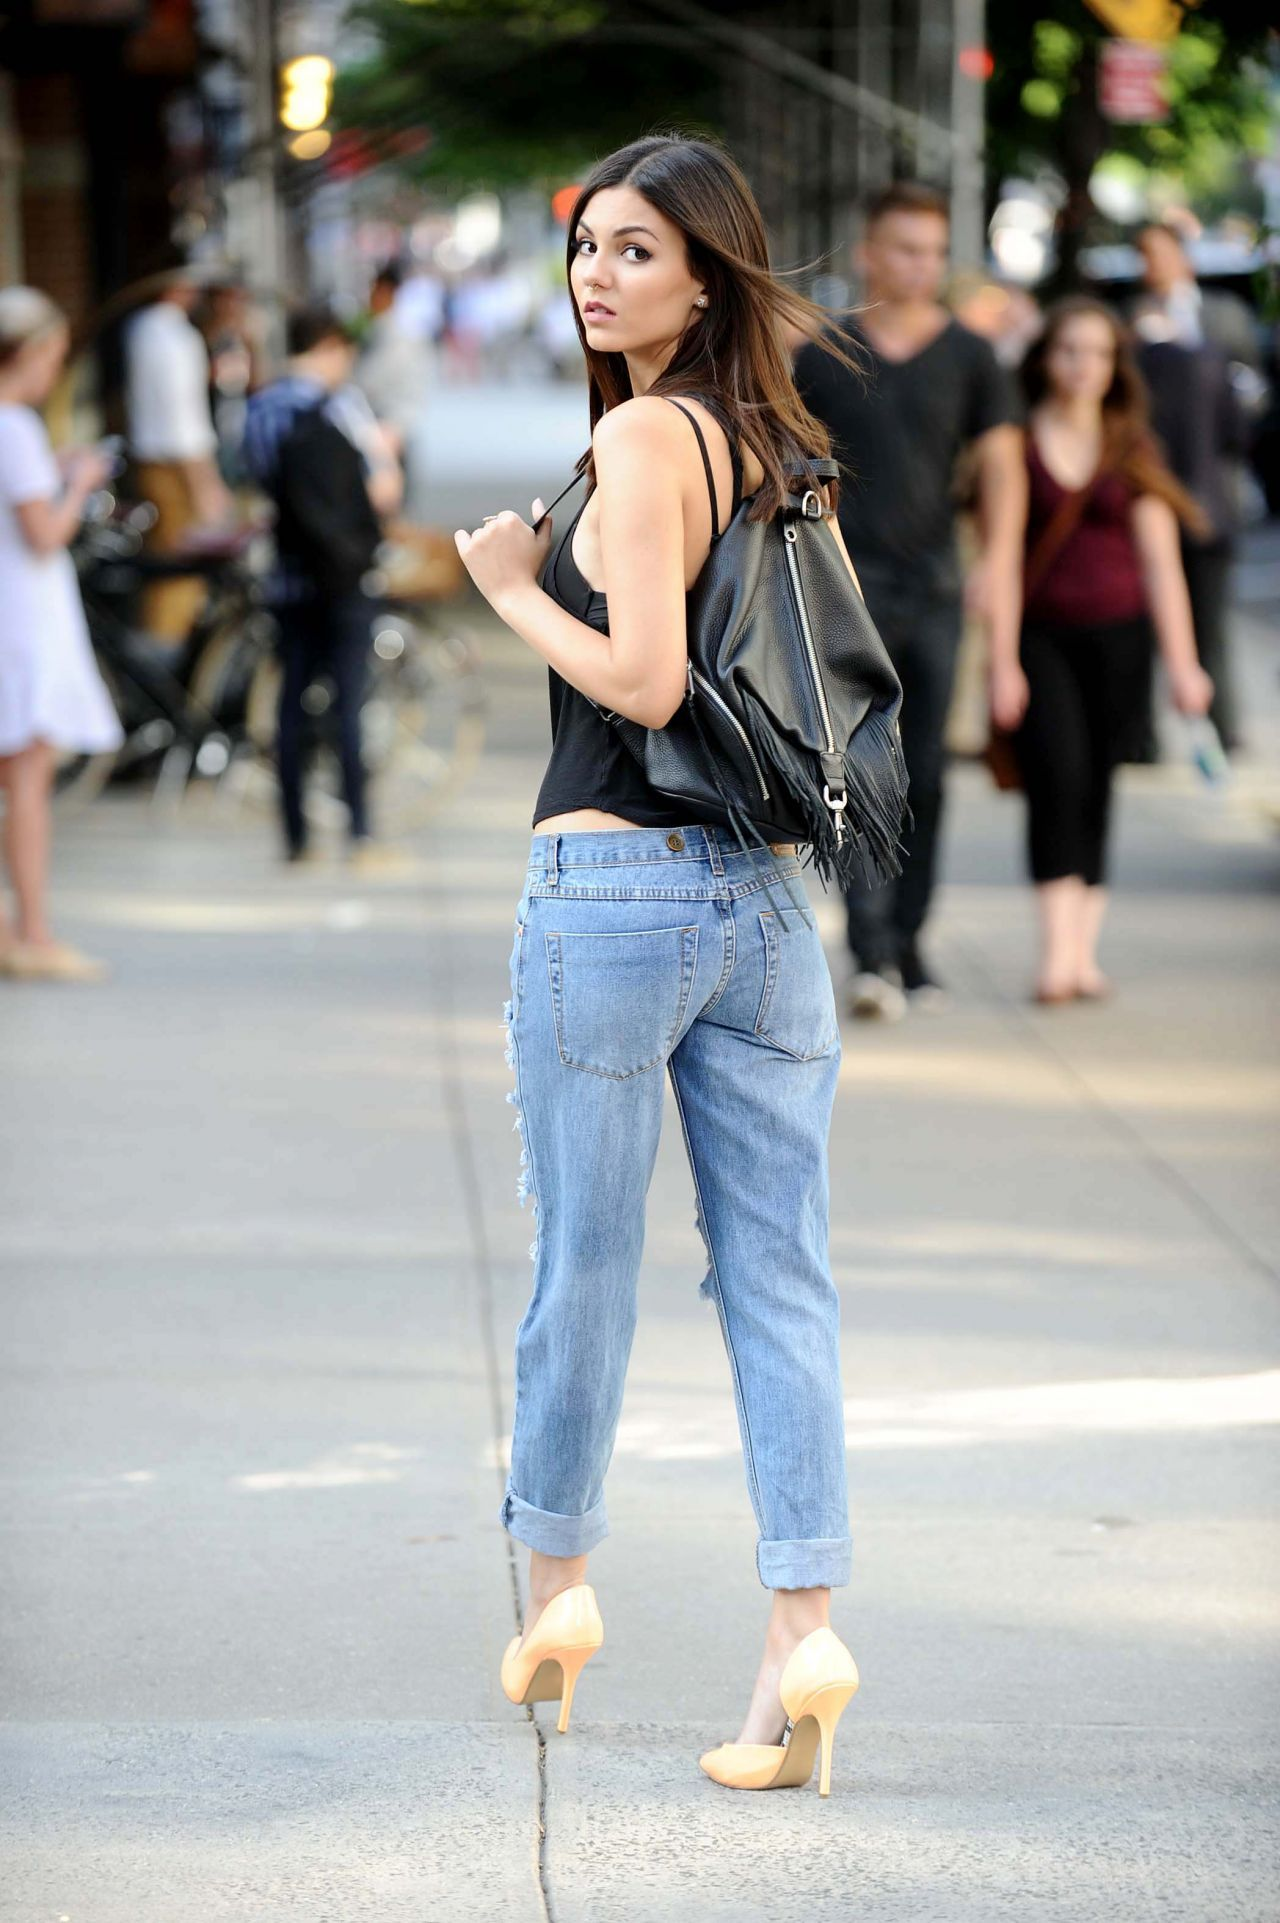 Victoria Justice in Ripped Jeans - New York City e6de68661